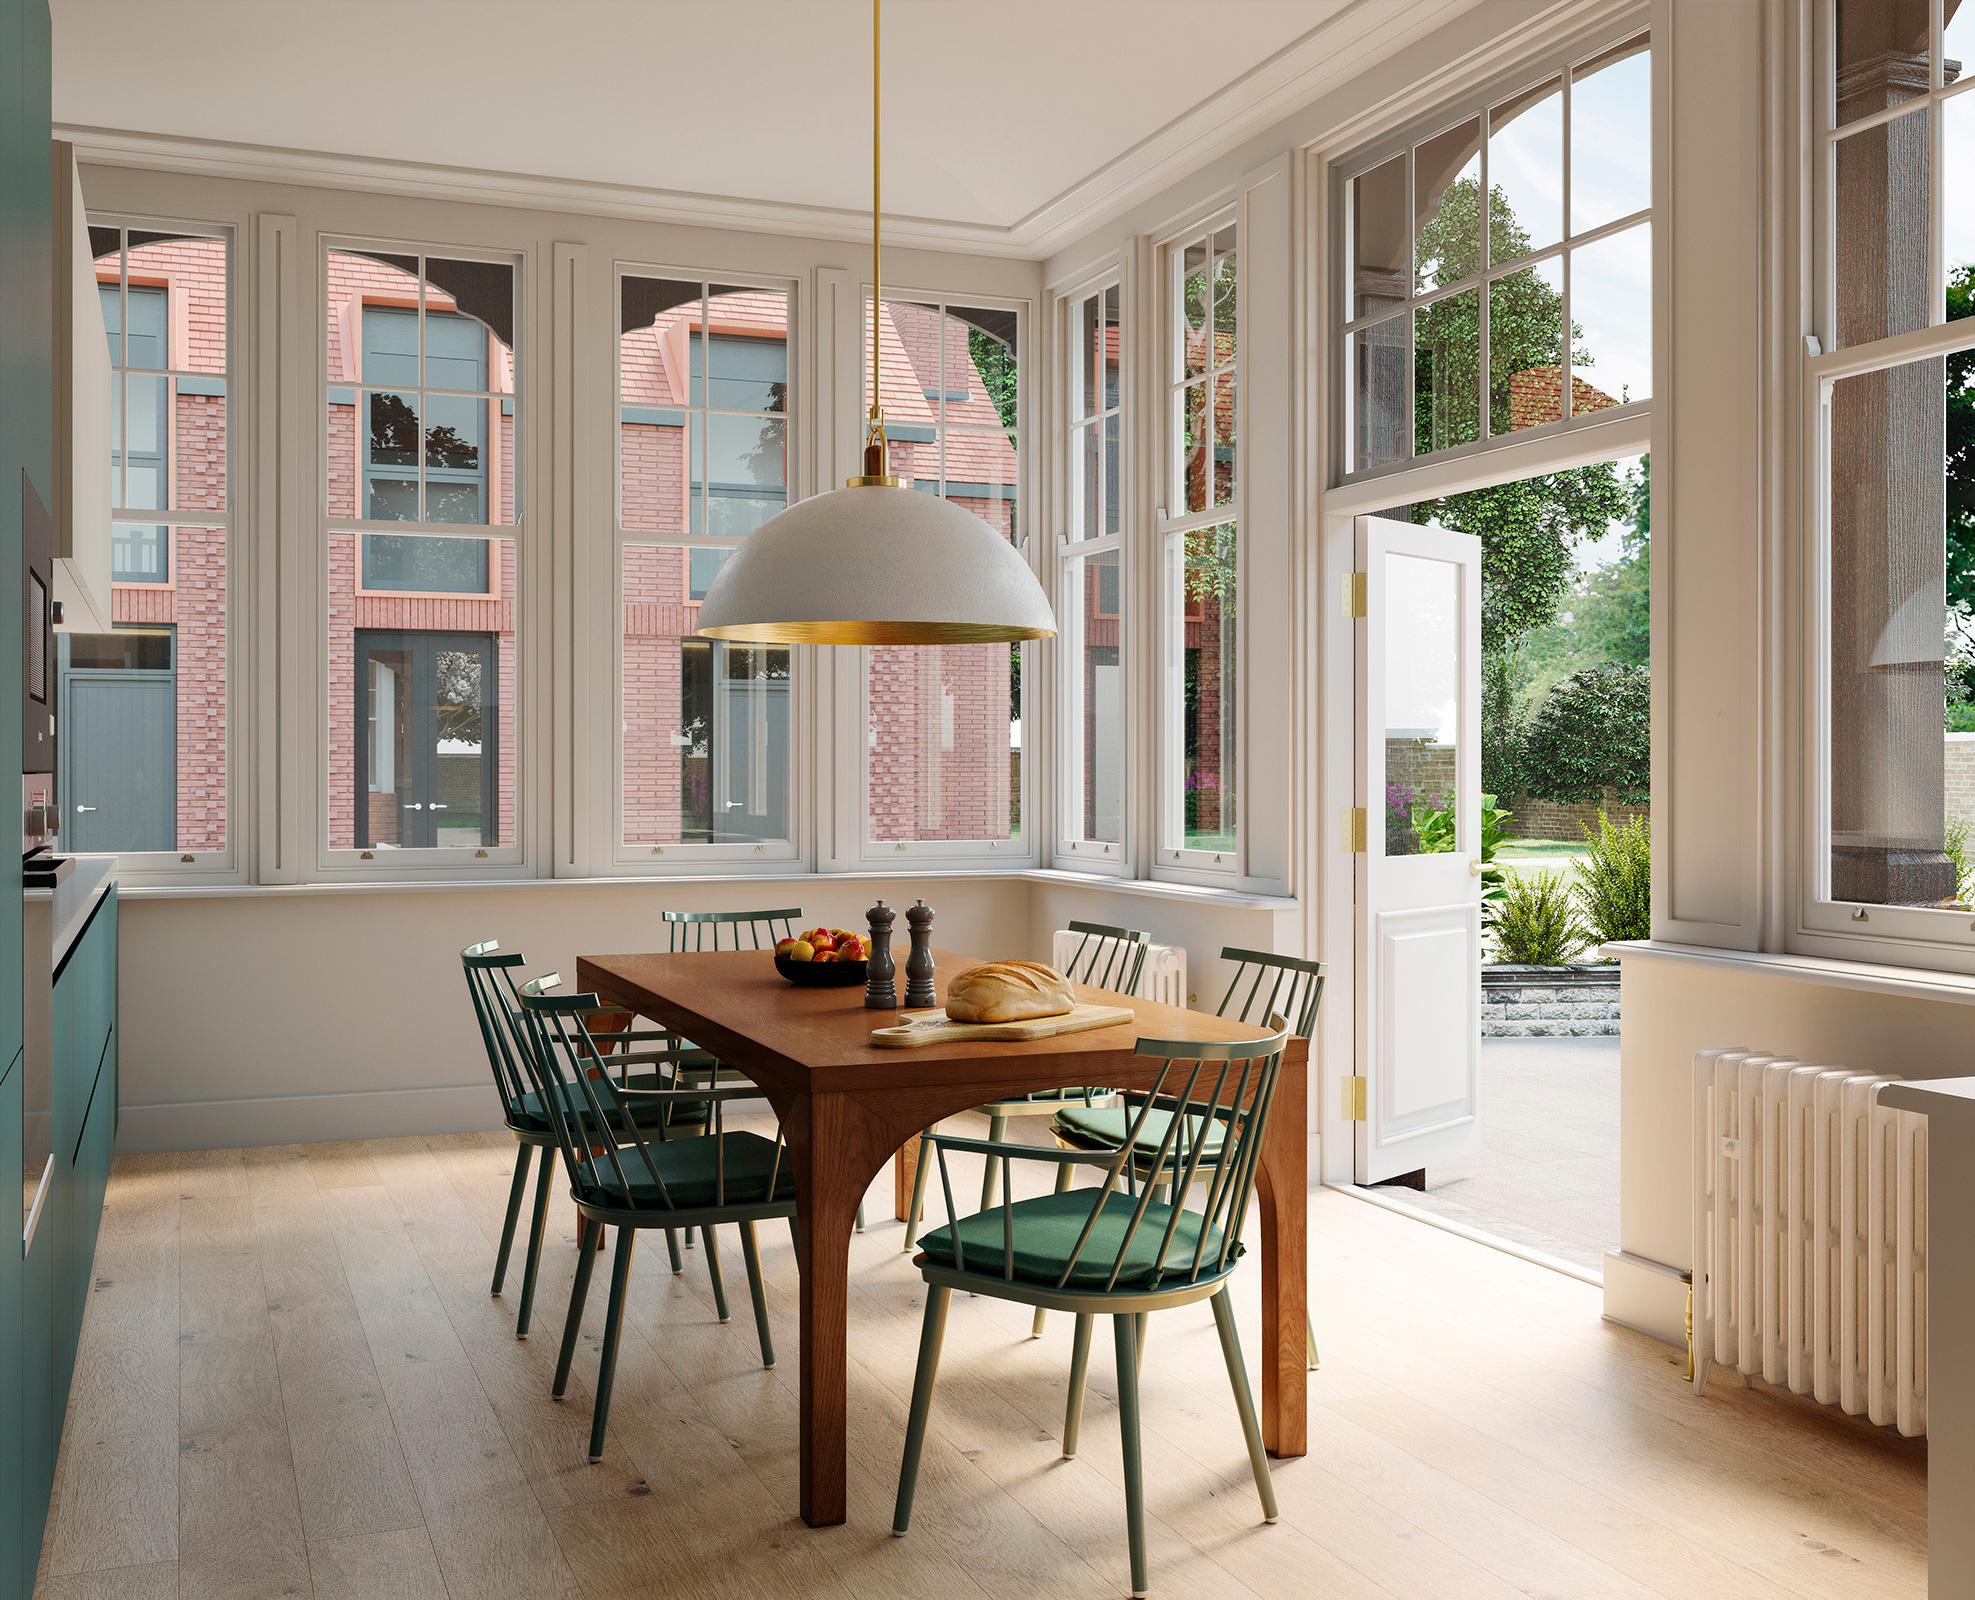 - The character of the building has been carefully conserved, developed and utilised to make the most of every space. In Apartment II the light, soul and ambiance of the gardens become a part of the residence and the private amenity is a perfect extension of the open plan kitchen — with morning sun, afternoons in the shade and sunset dinners.